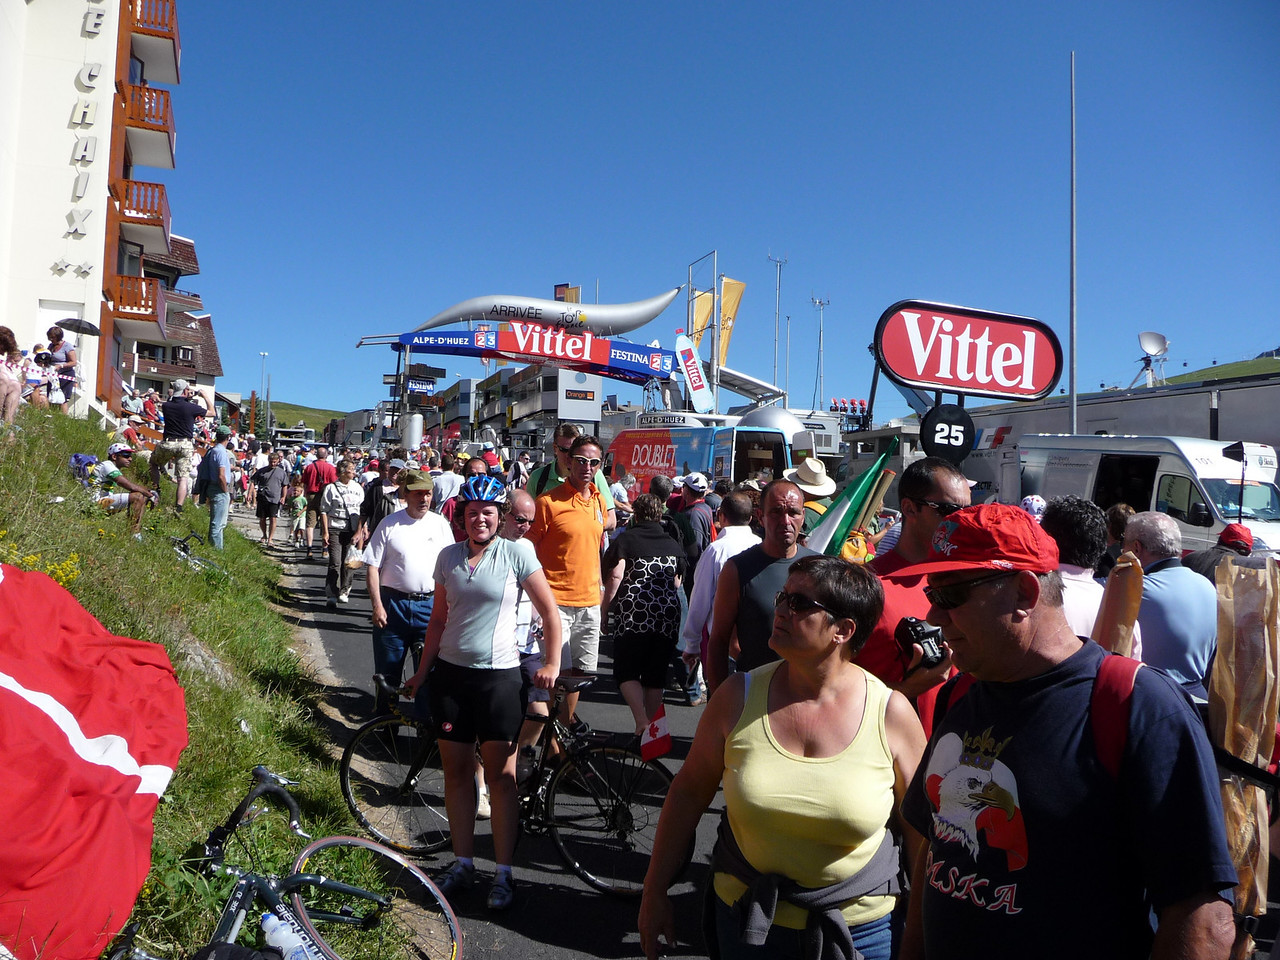 At the finish line at the top of Alpe d'Huez. It was madness up there - crowds of people and bikes and clowns everywhere. We took some photos and went 1/2 way down the mountain to watch the race. Location - Alpe d'Huez